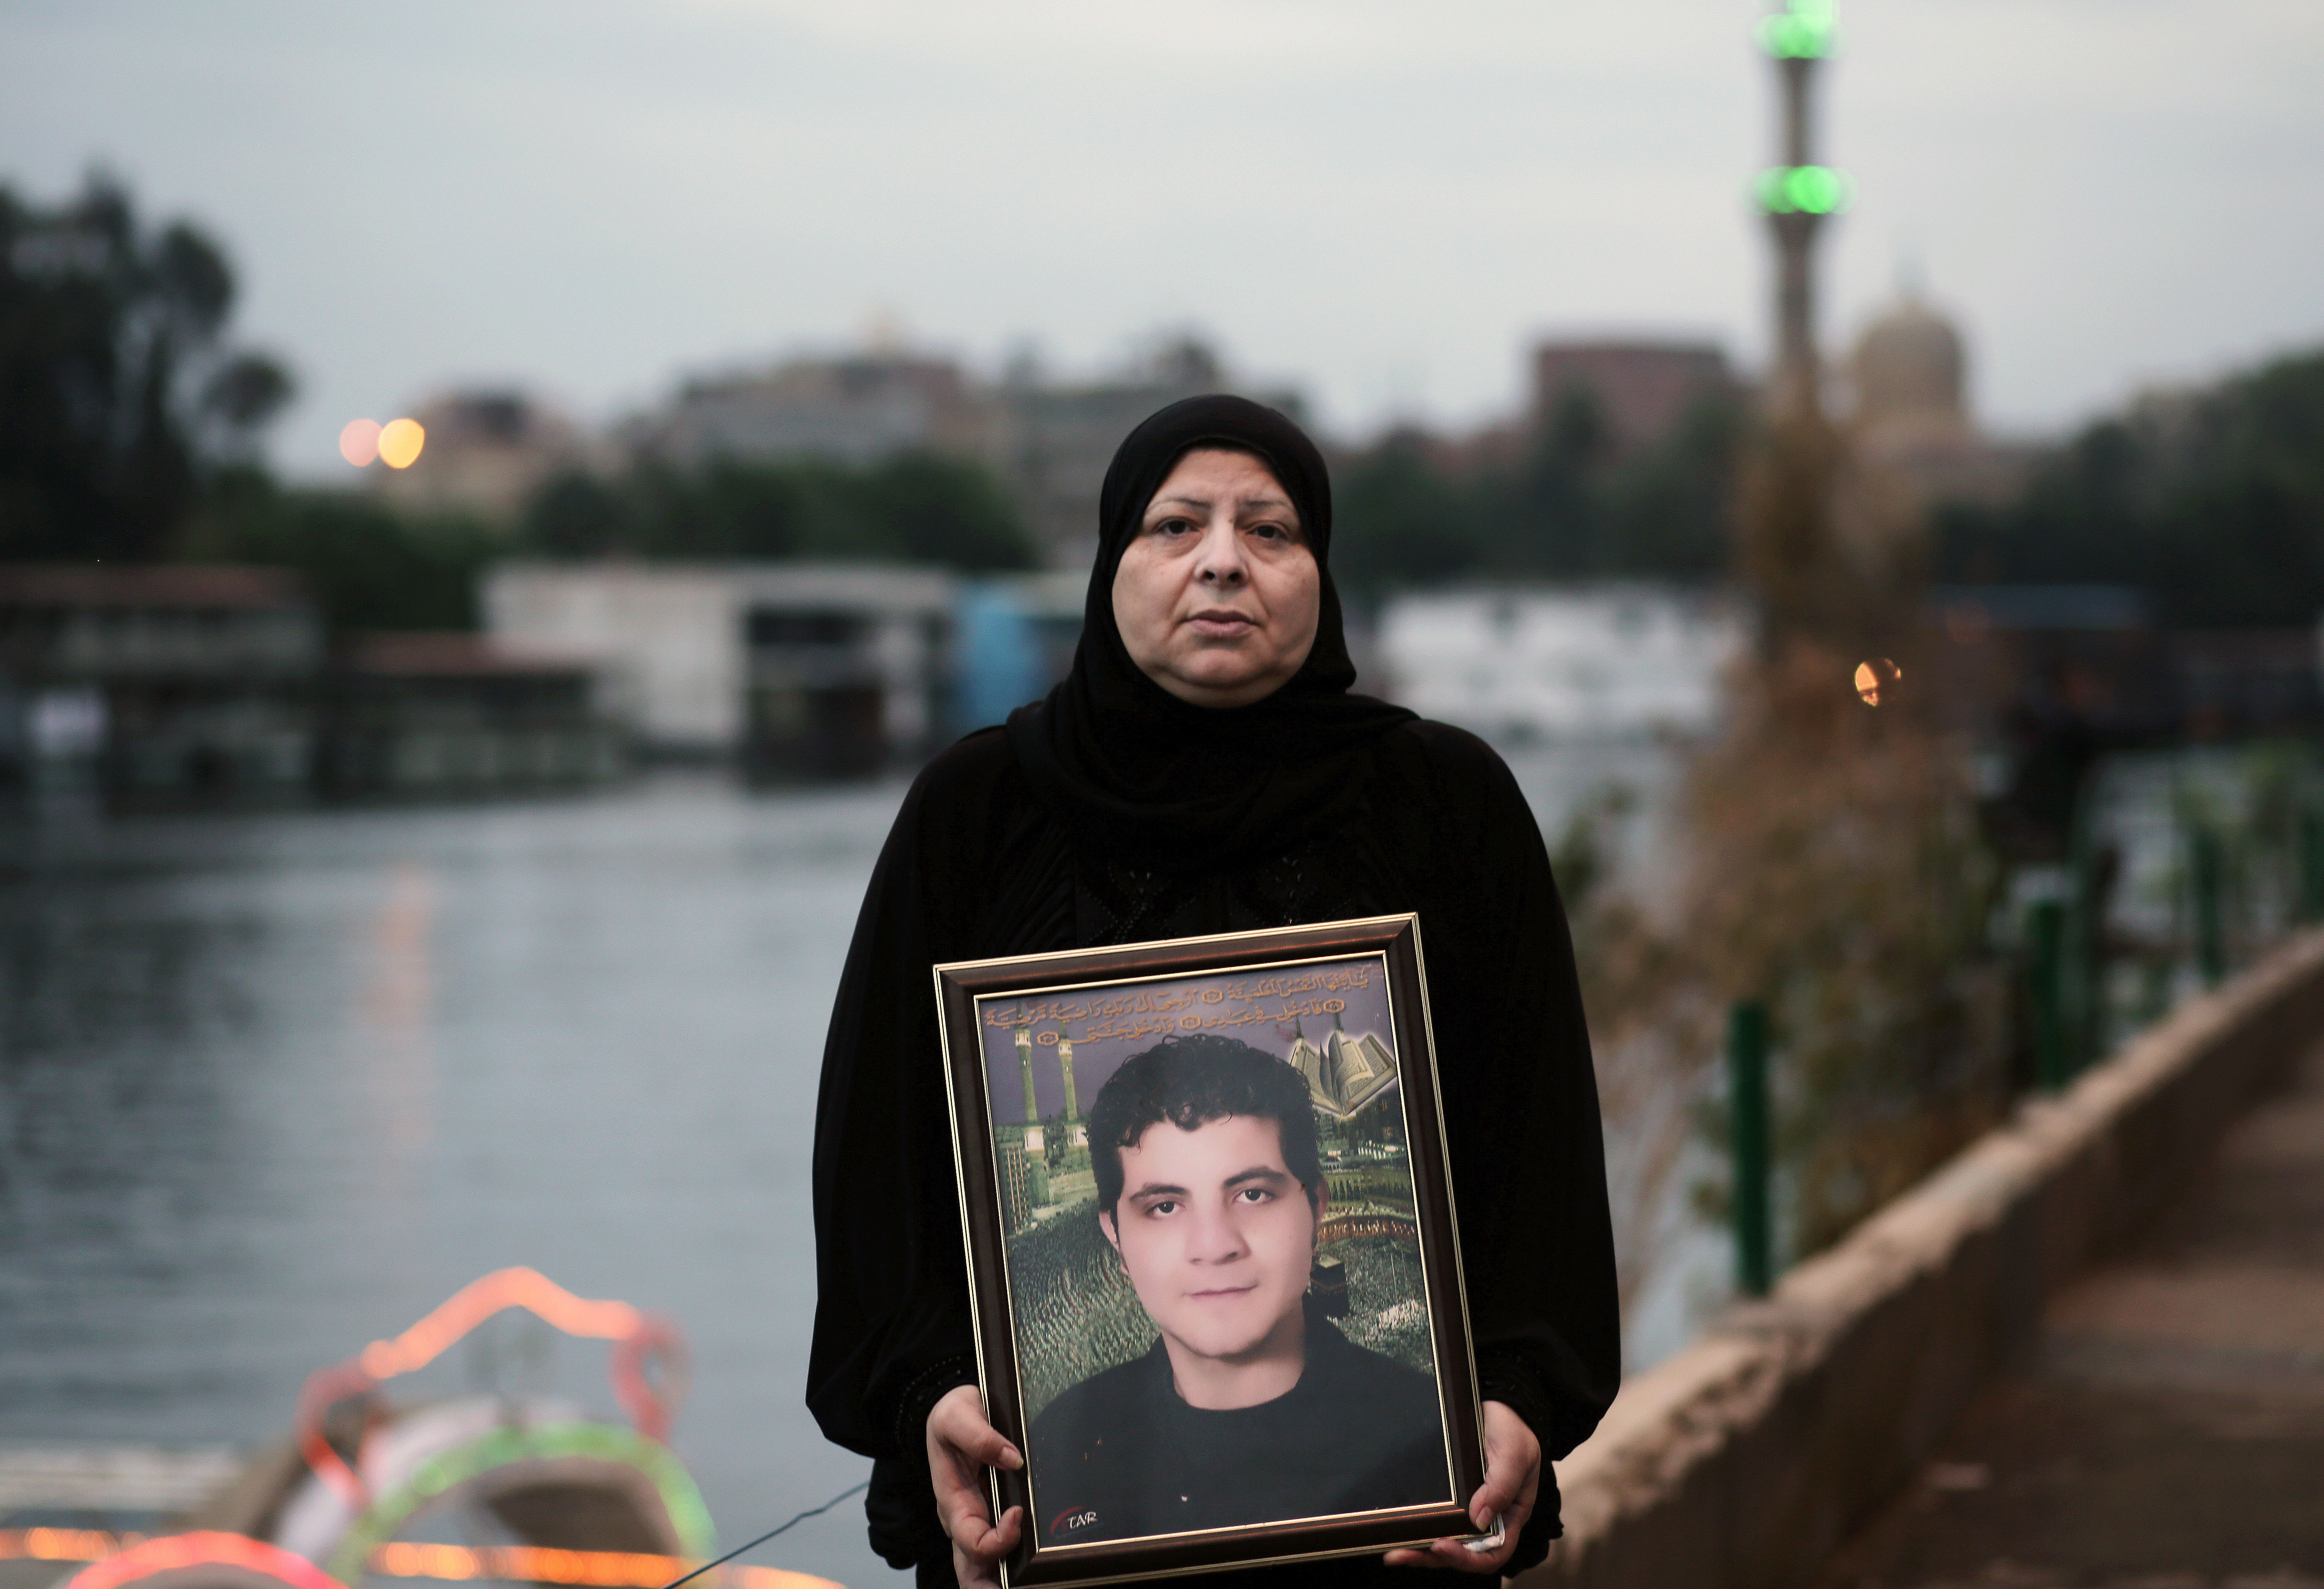 """Amel Shaker holds a portrait of her 25-year-old son Ahmed, who was fatally shot in the back on the """"Friday of Rage,"""" one of the bloodiest days of Egypt's 2011 uprising against longtime autocrat Hosni Mubarak, in Cairo, Egypt."""